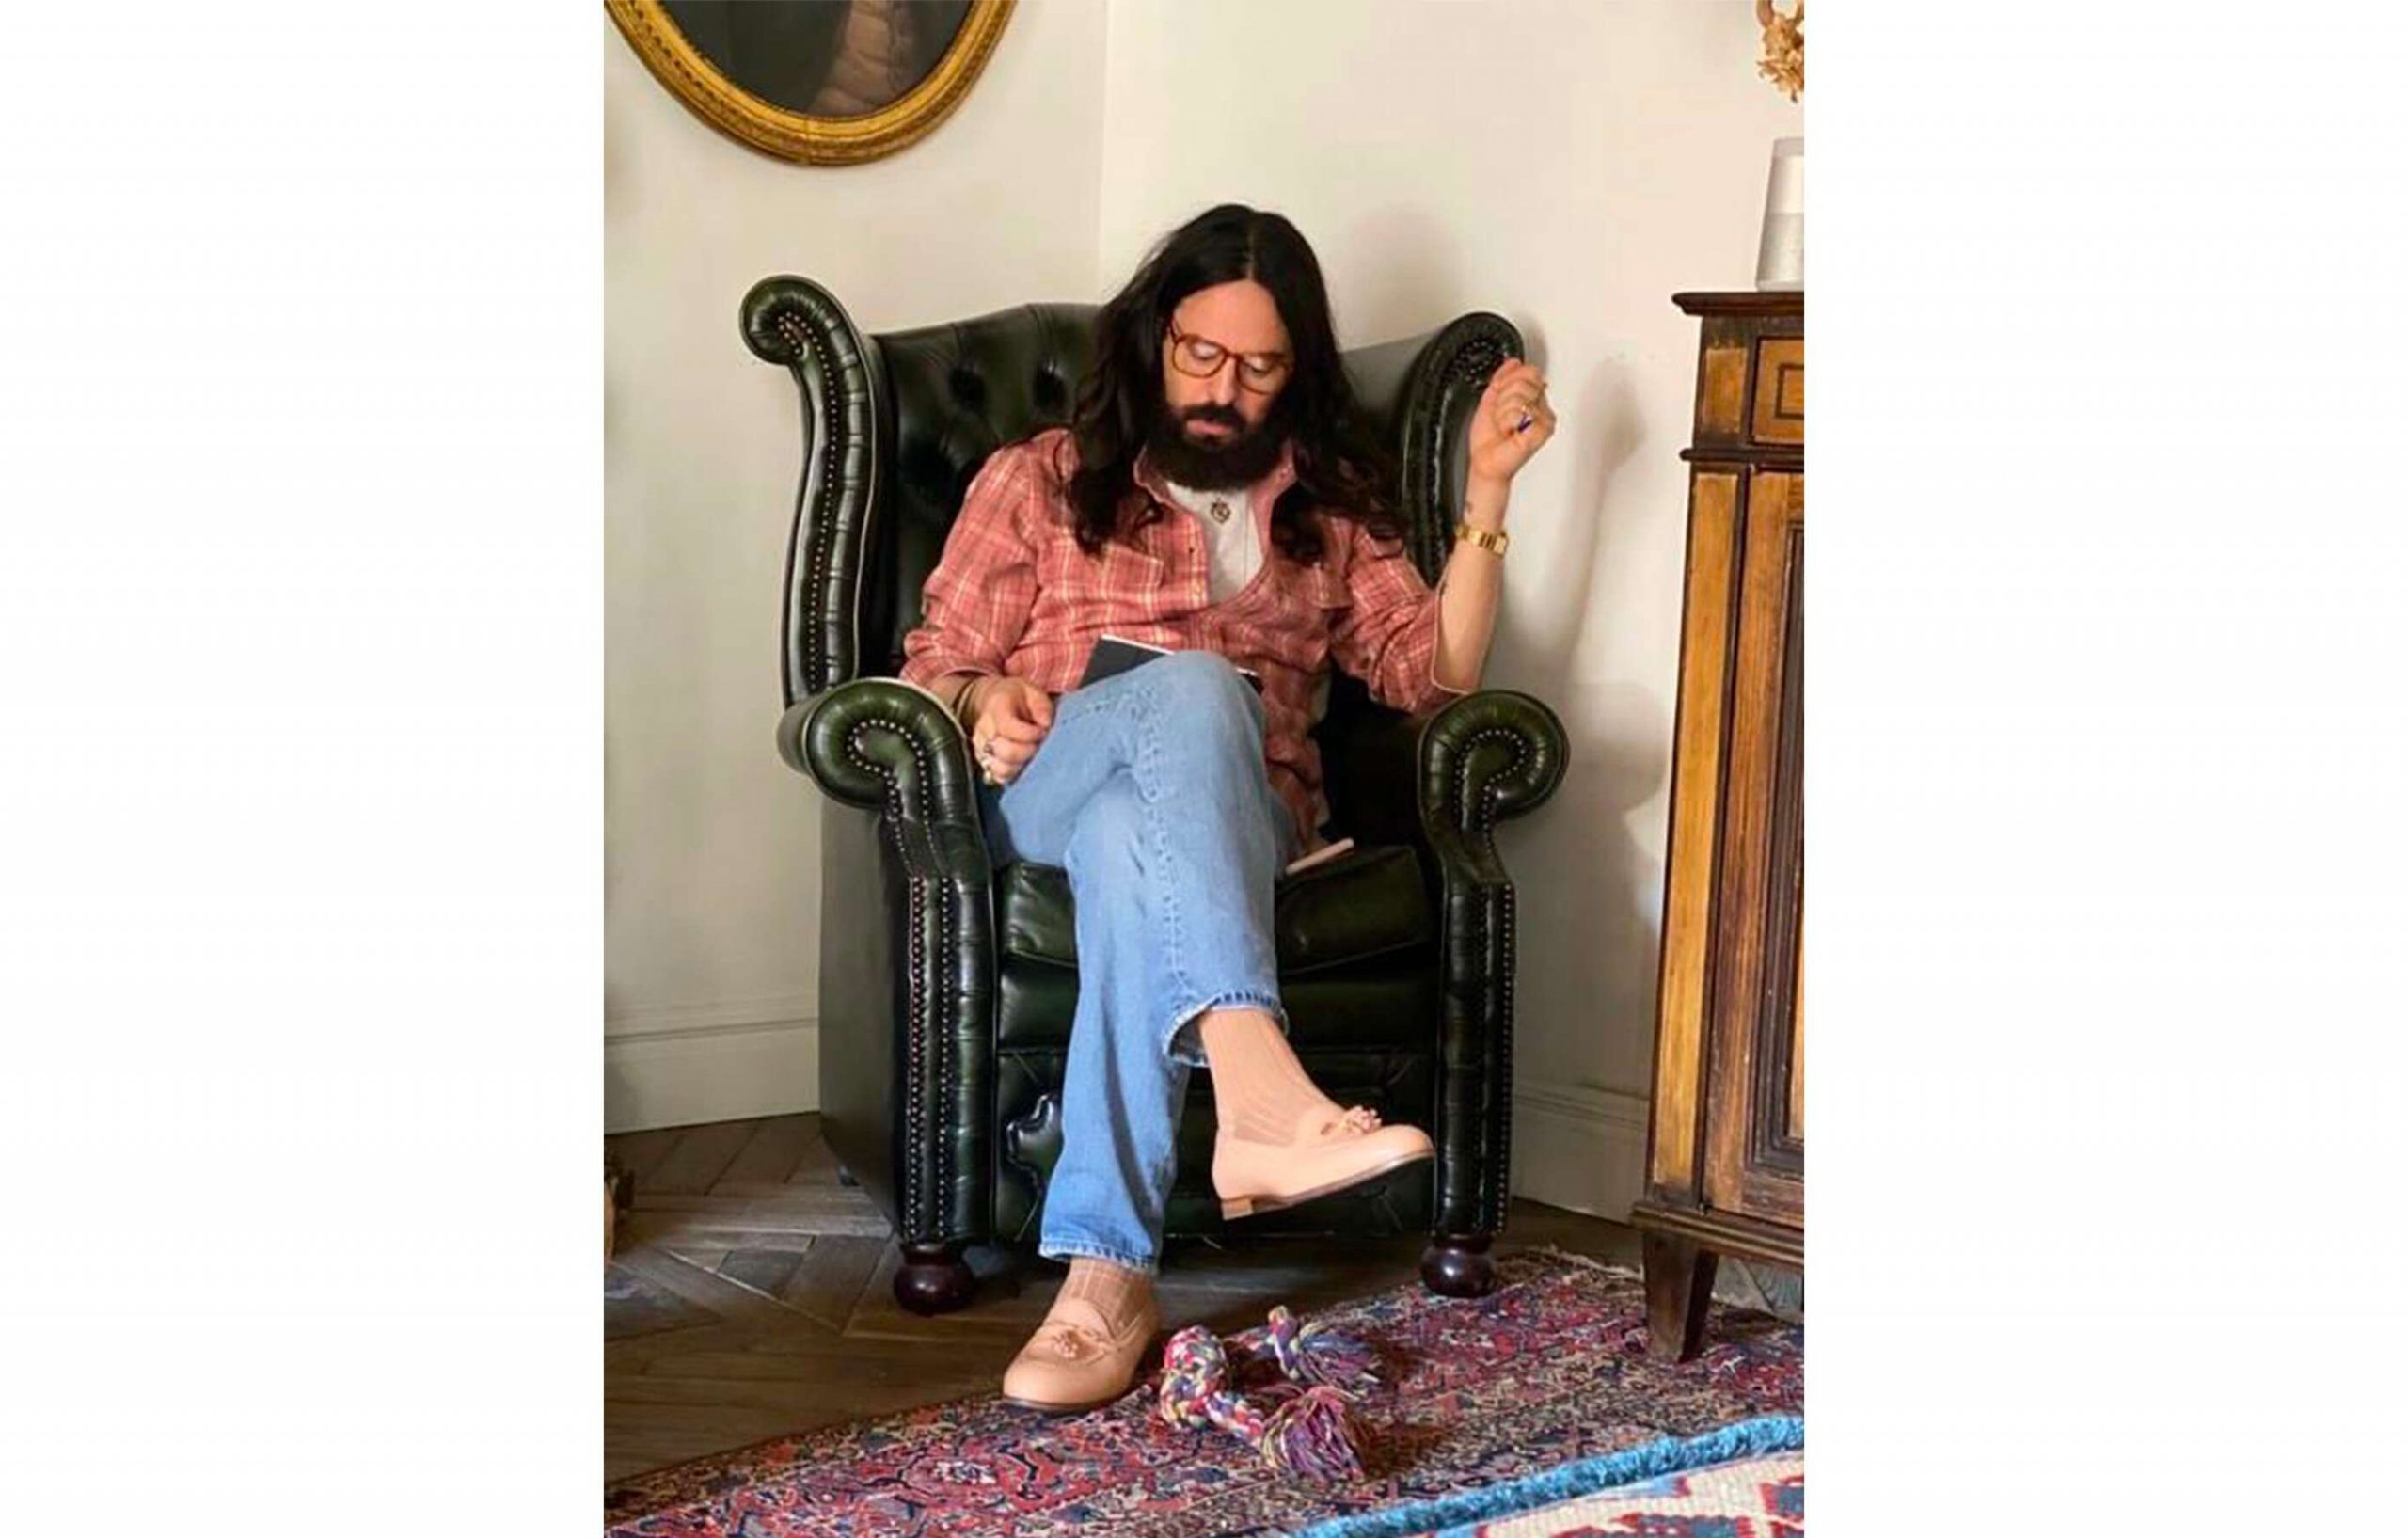 Gucci's Alessandro Michele to Reduce Gucci's Fashion Shows From 5 to 2